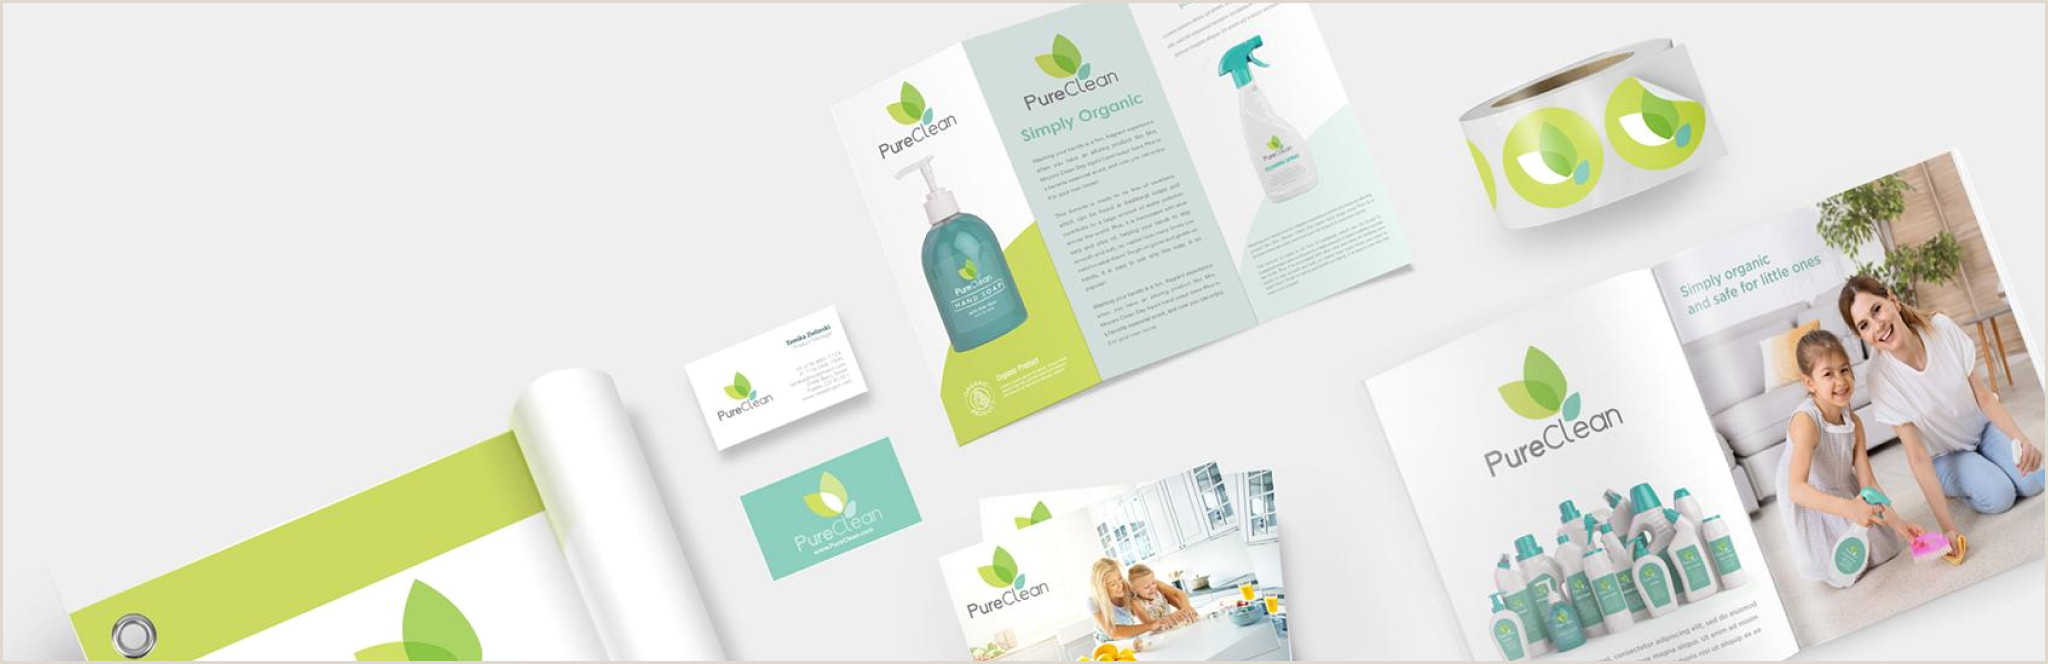 Best Way To Store Business Cards Printplace High Quality Line Printing Services